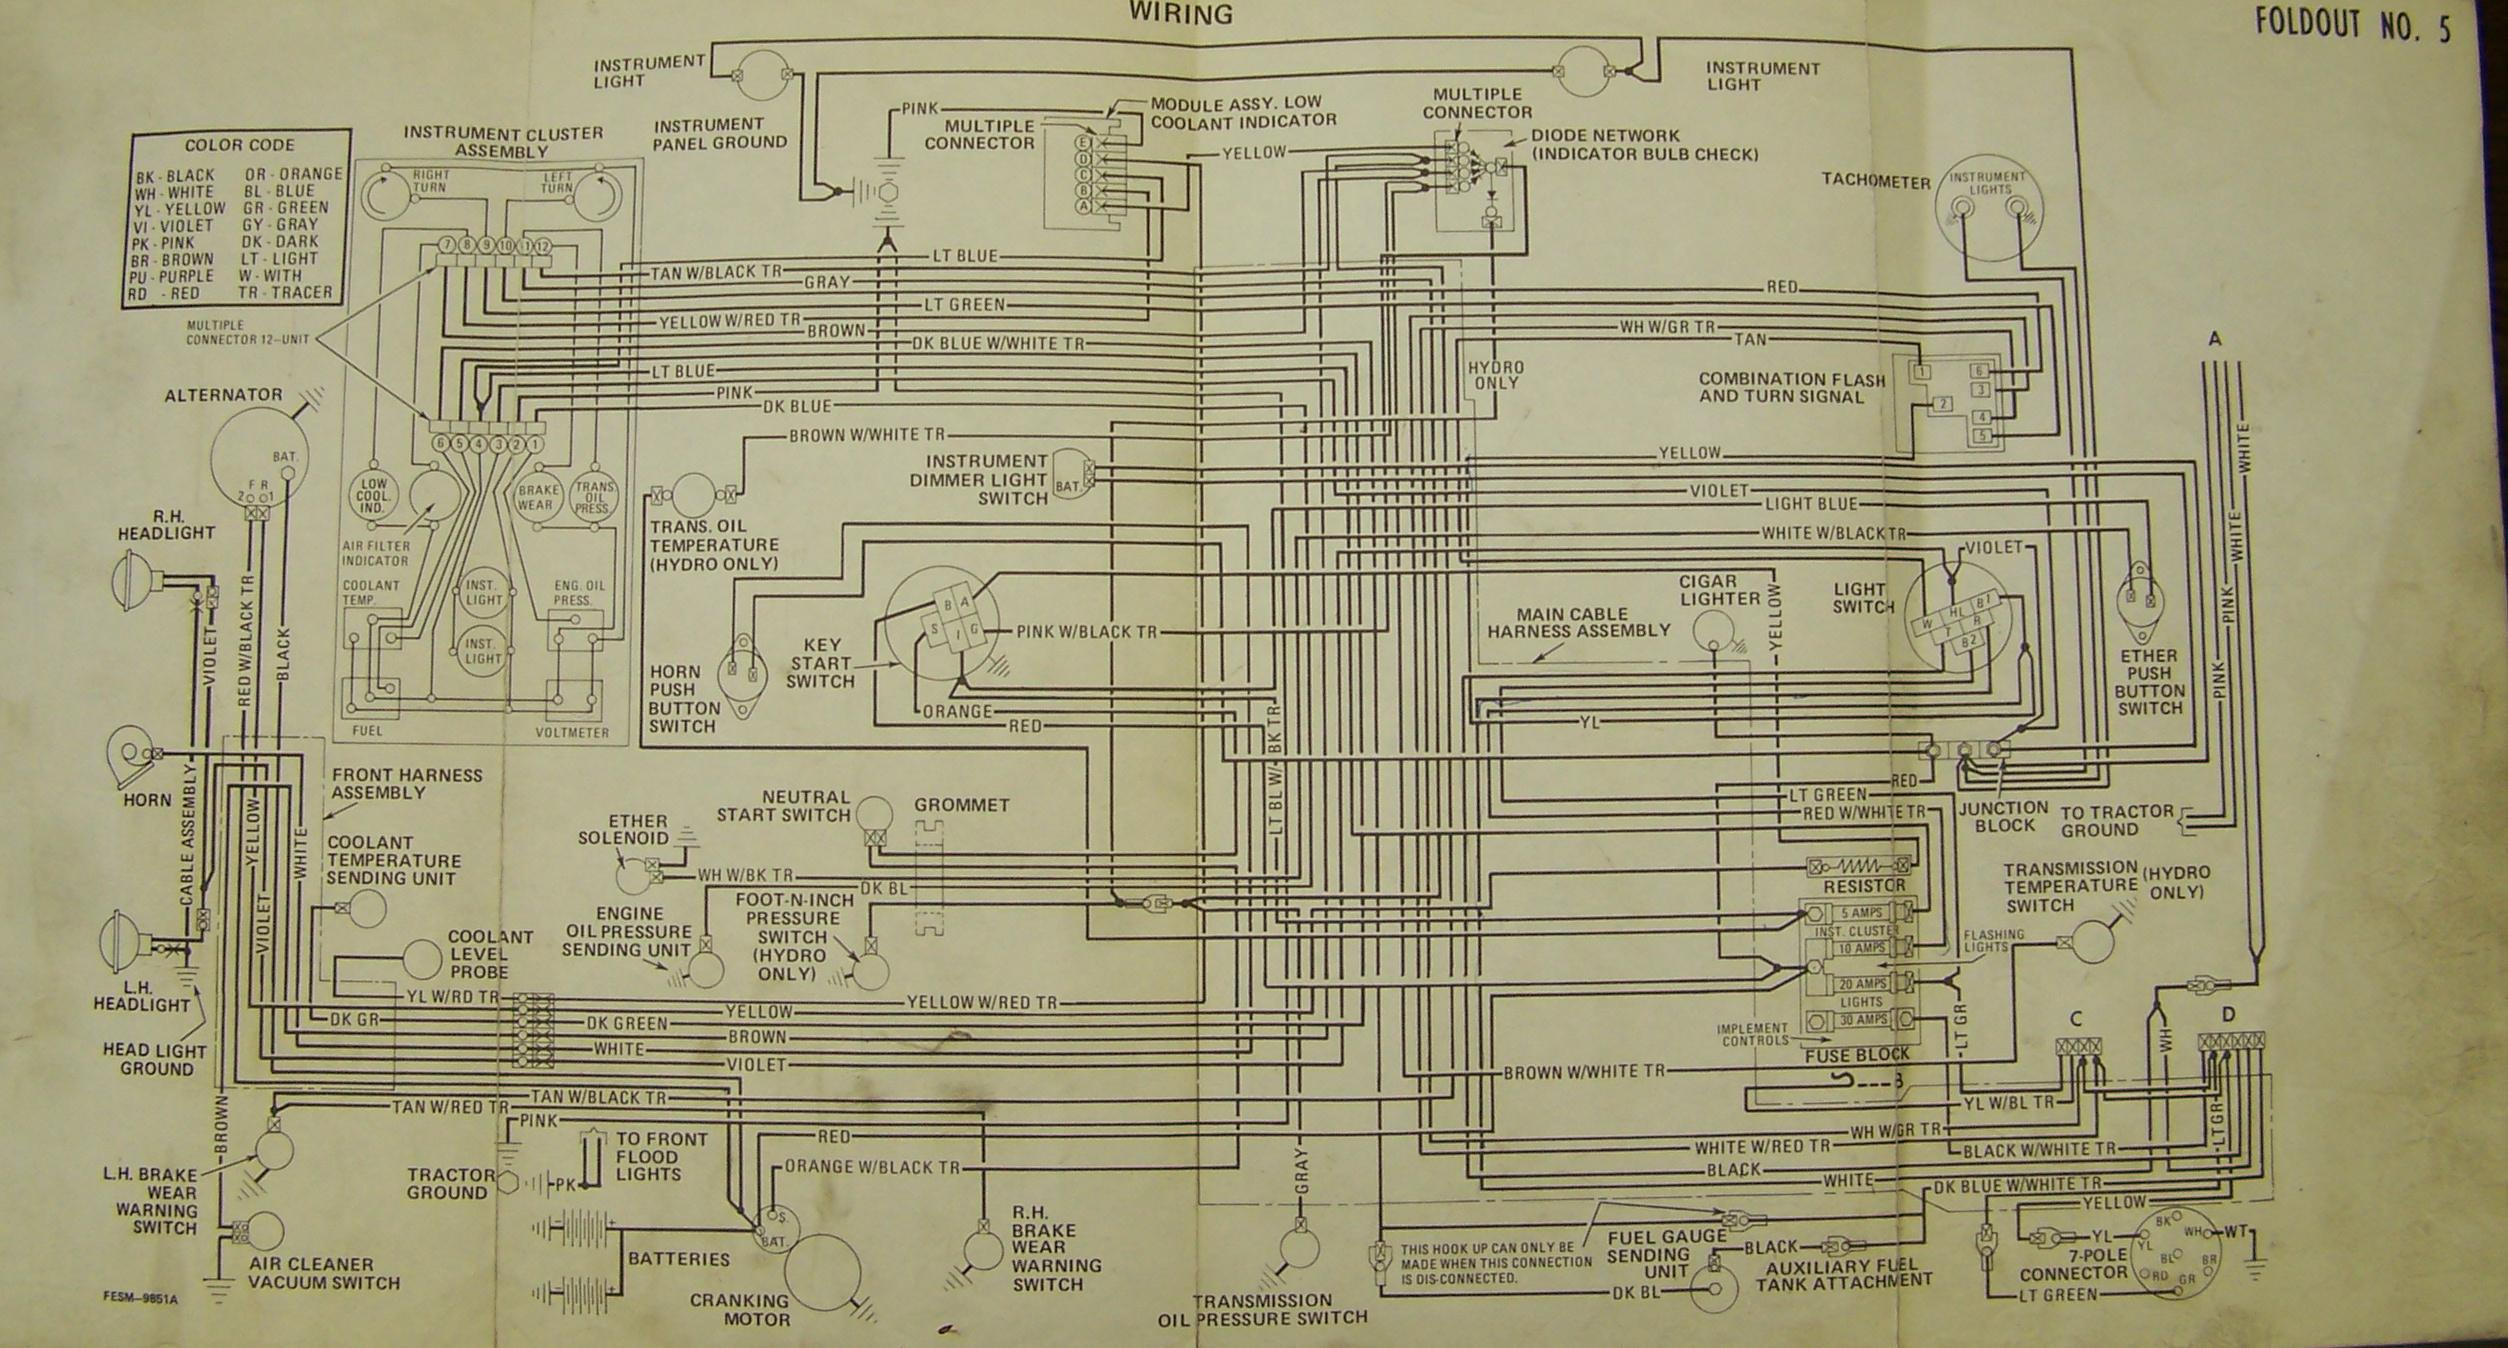 86series5 international motor diagrams ge electric motor wiring diagram 856 international wiring harness at gsmx.co